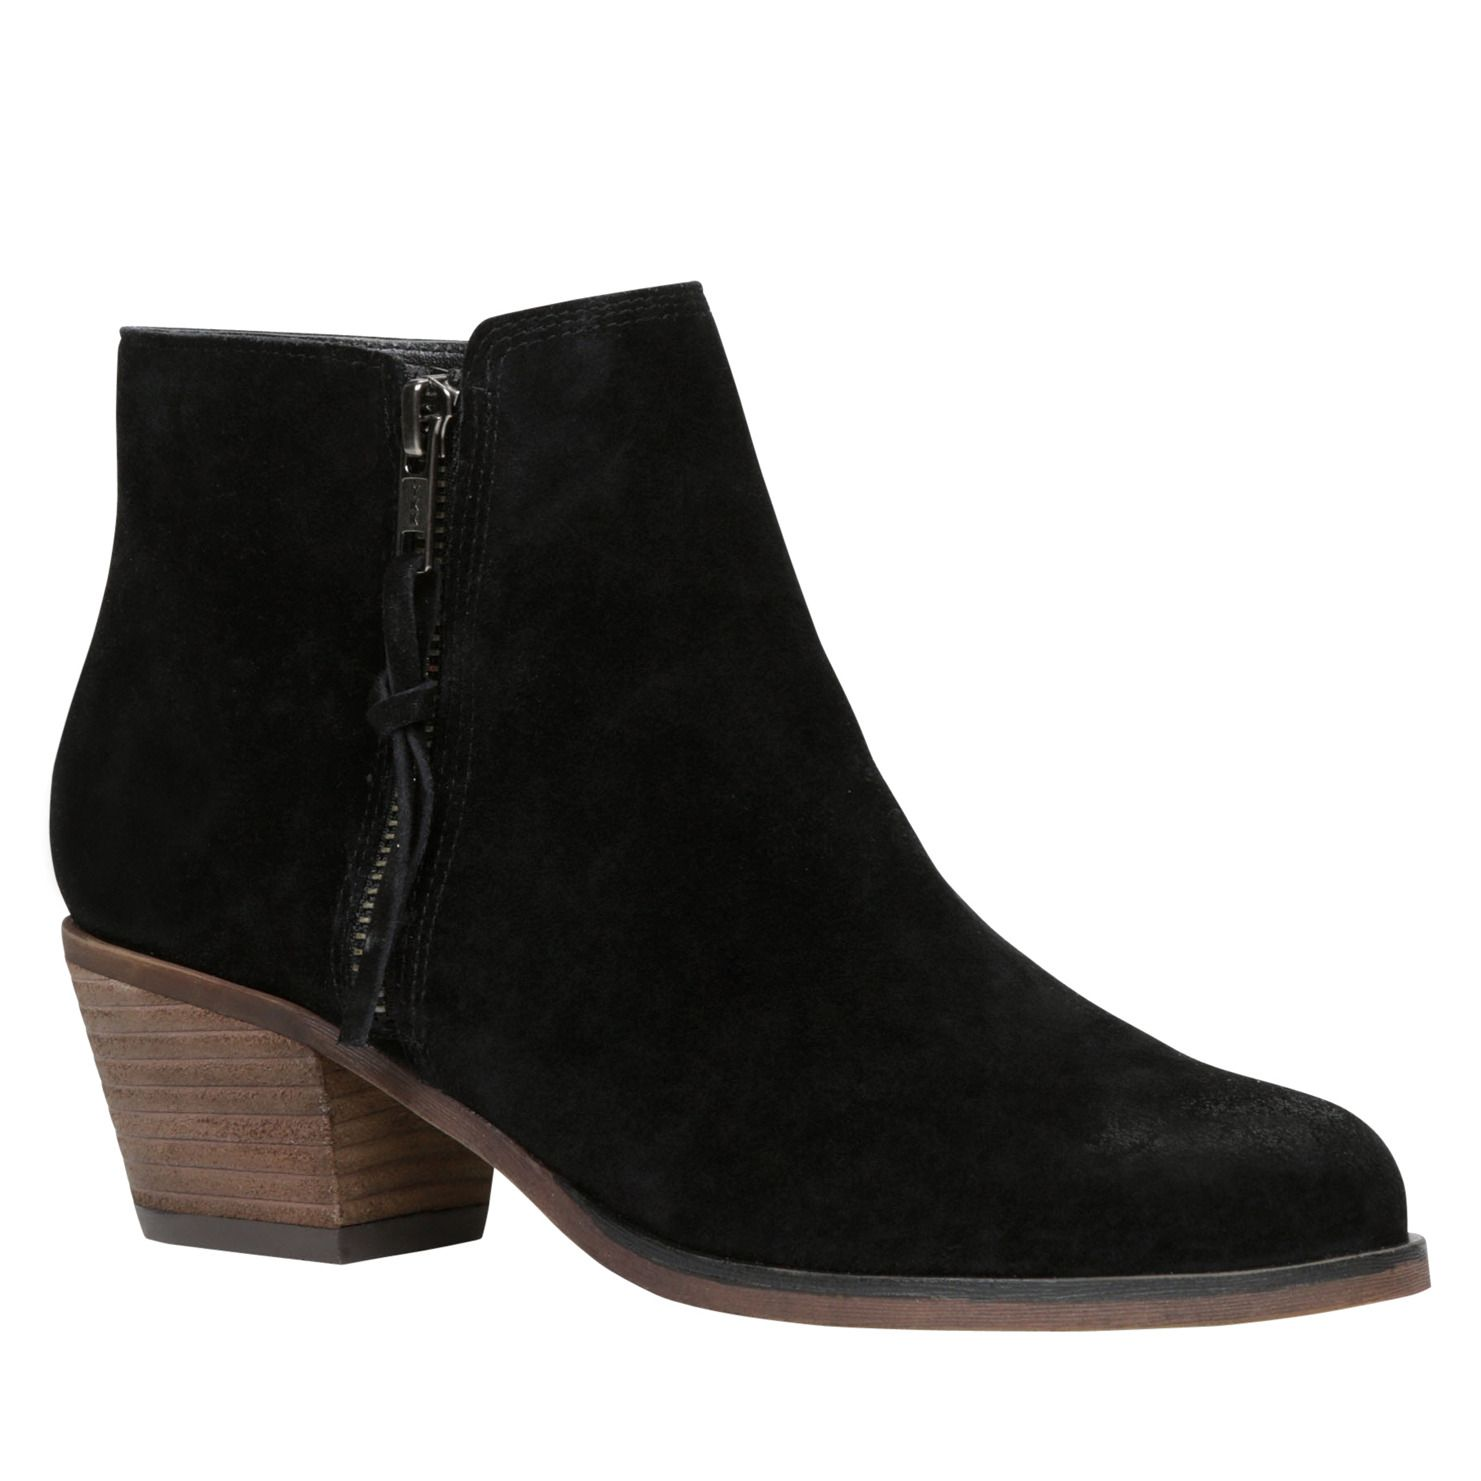 6eaeb290a488 HASSICK - women's ankle boots boots for sale at ALDO Shoes. | omg ...